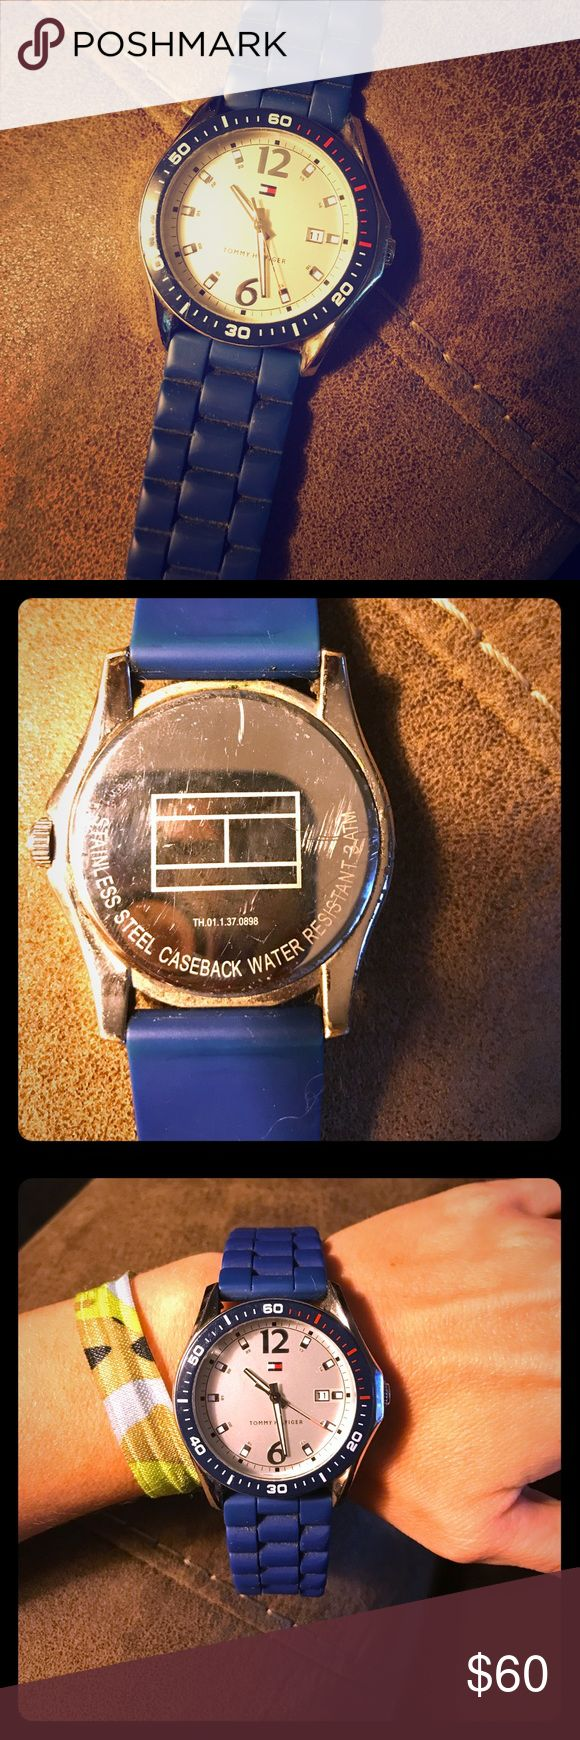 Men's watch! 👍🏼💕 Beautiful blue Tommy watch! Rubber strap. The face is in perfect condition! One of my favorites by far for a man. Tommy Hilfiger Accessories Watches